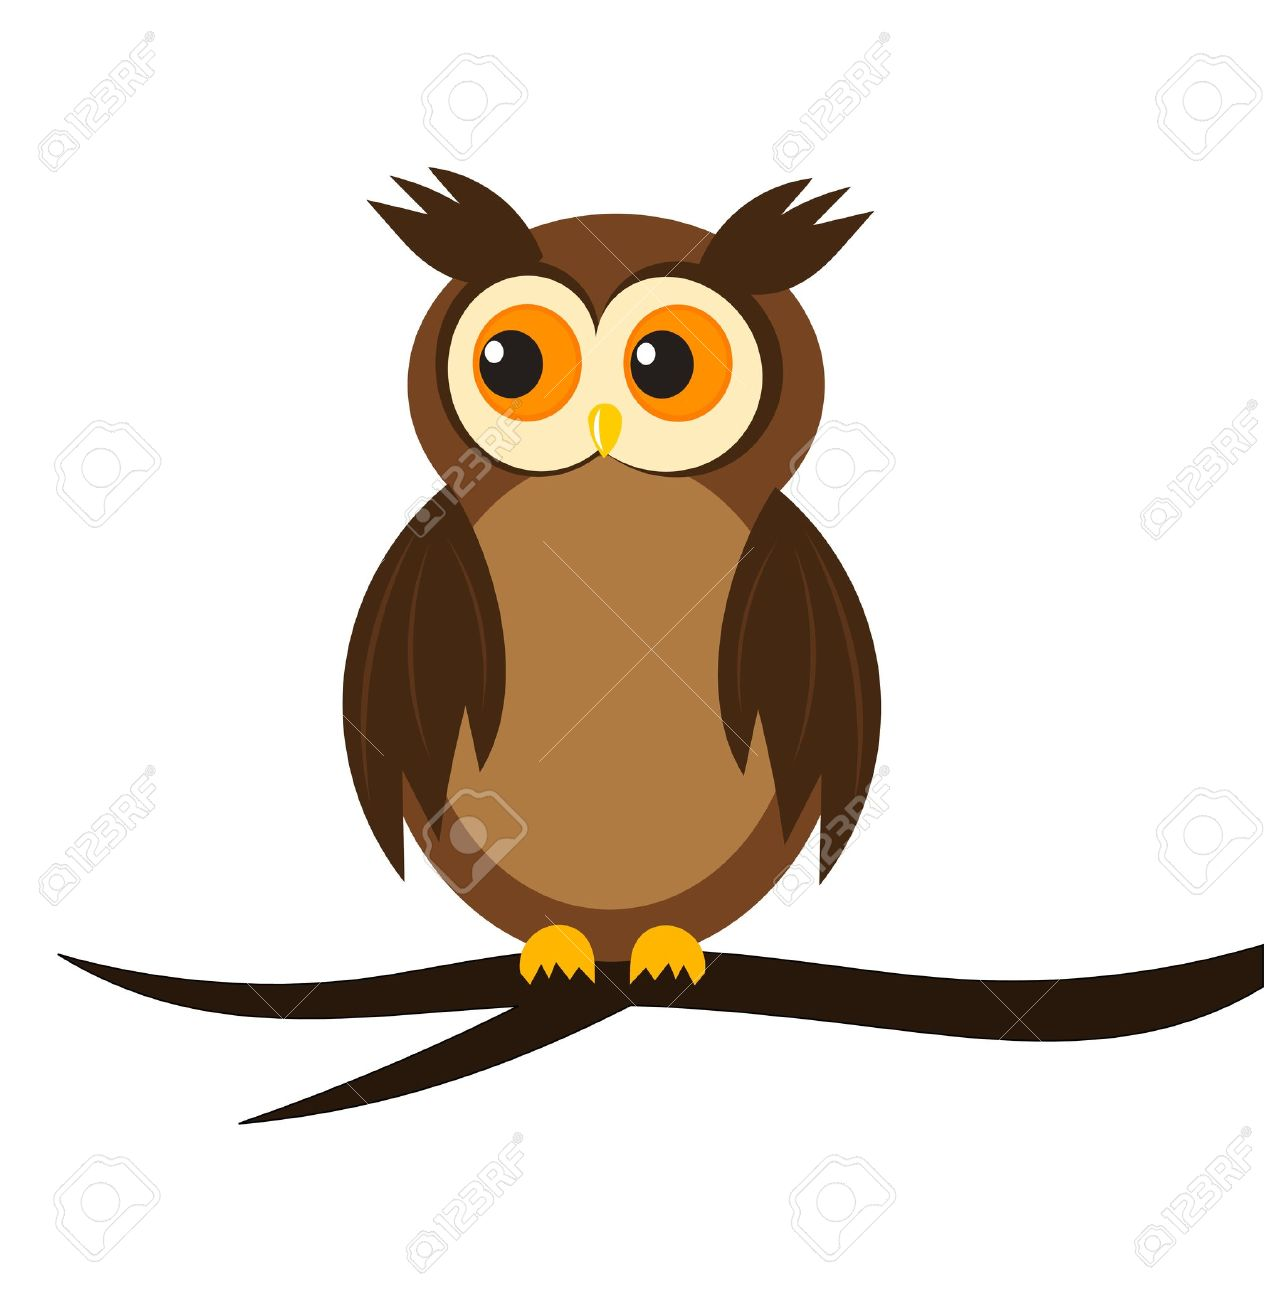 Cartoon owls group jpg